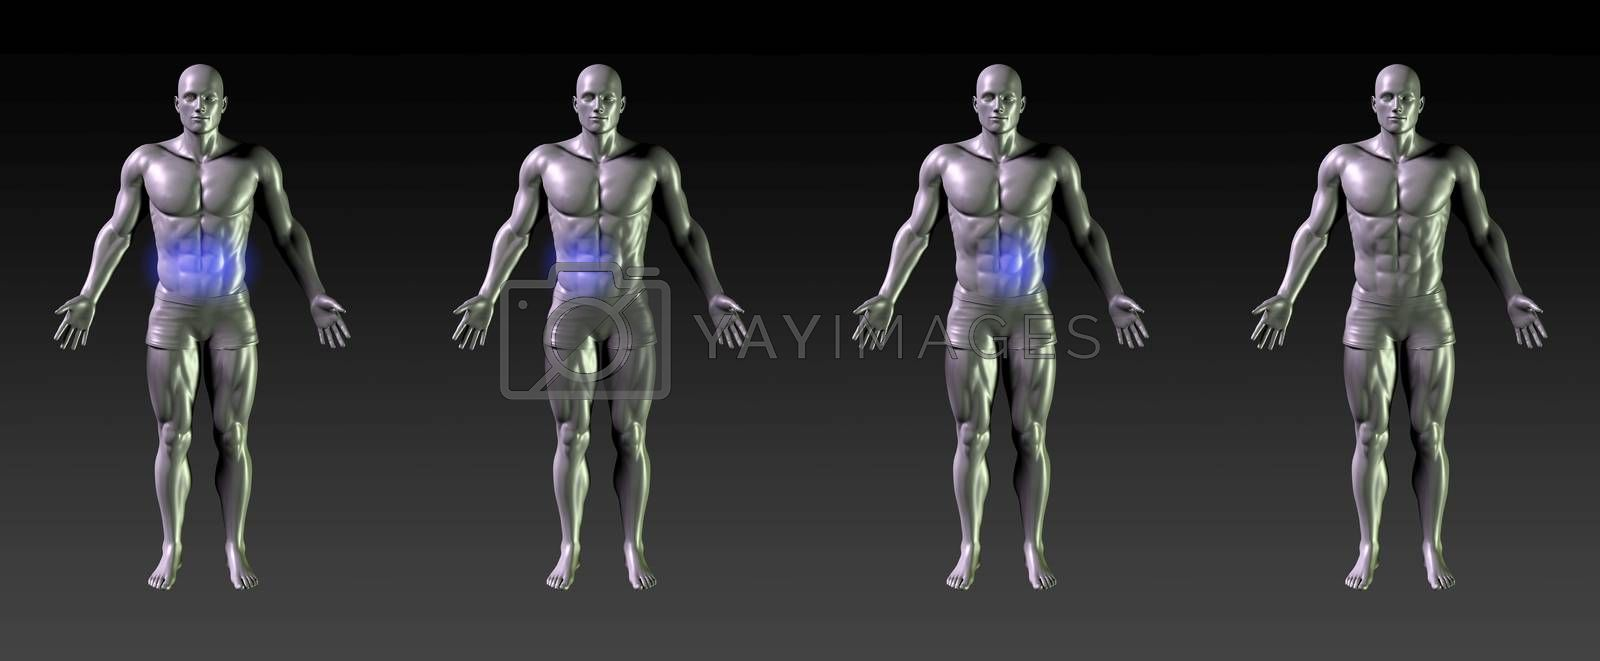 Abdominal Recovery or Rehabilitation with Blue Glow